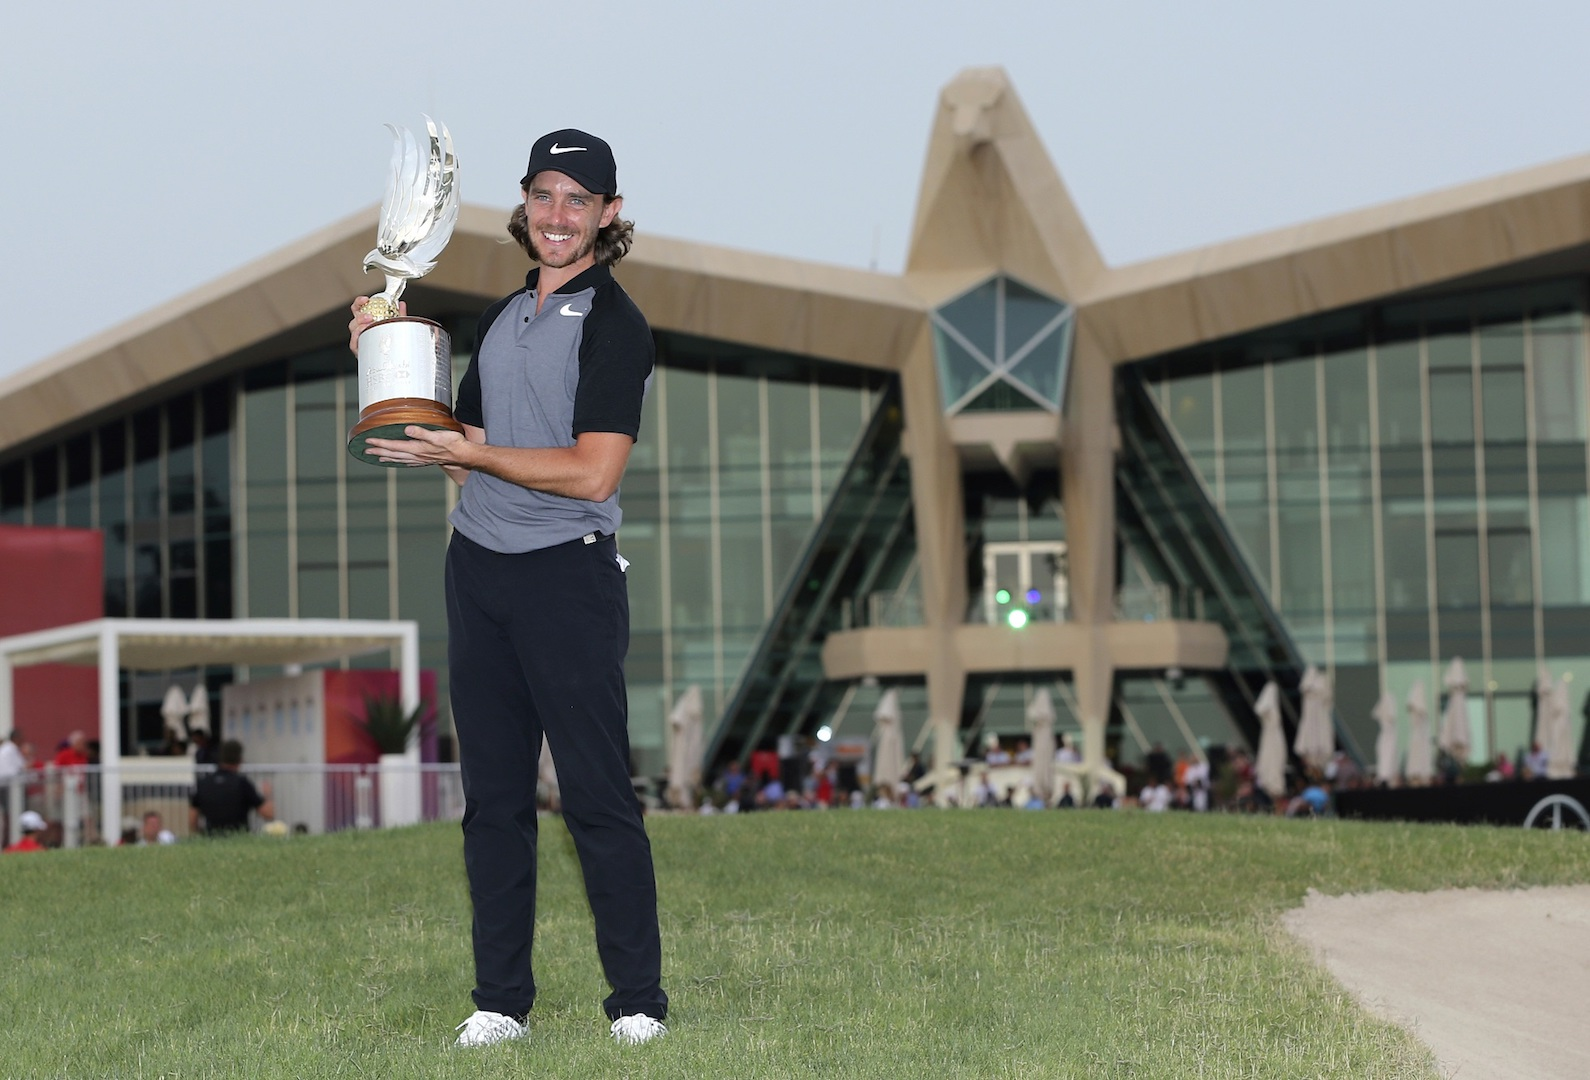 Countdown begins for Abu Dhabi HSBC Championship